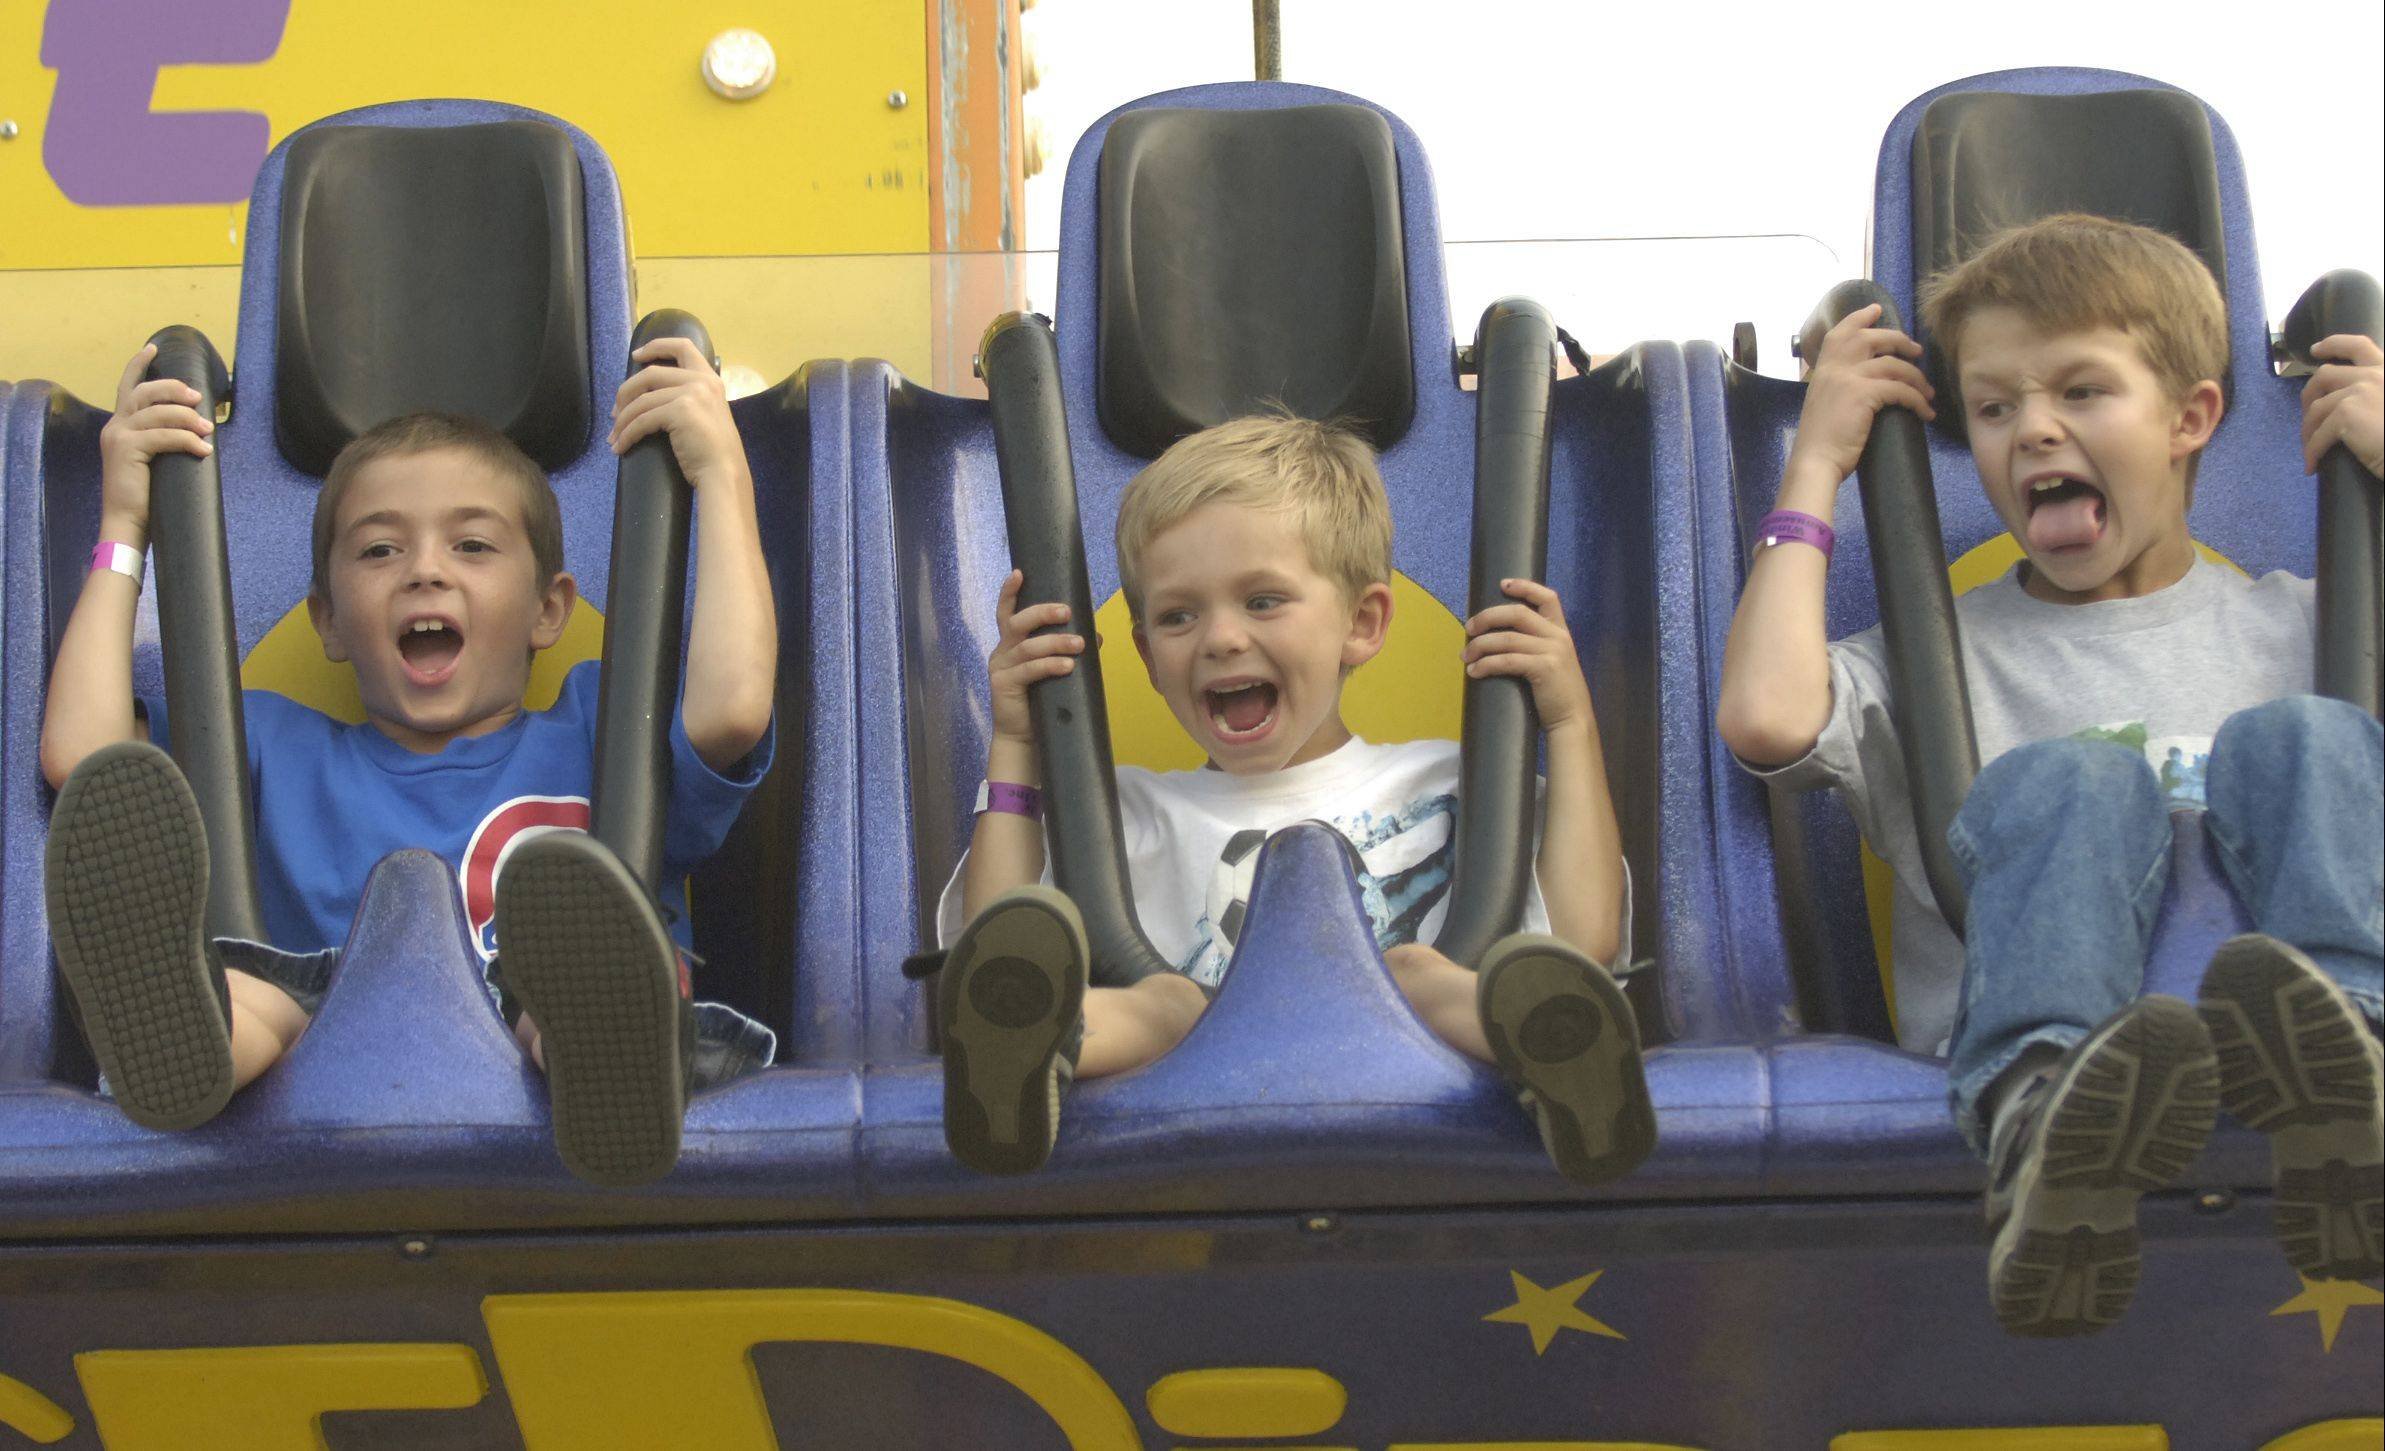 Carnival rides will offer excitement at the Sugar Grove Corn Boil this weekend in Volunteer Park.